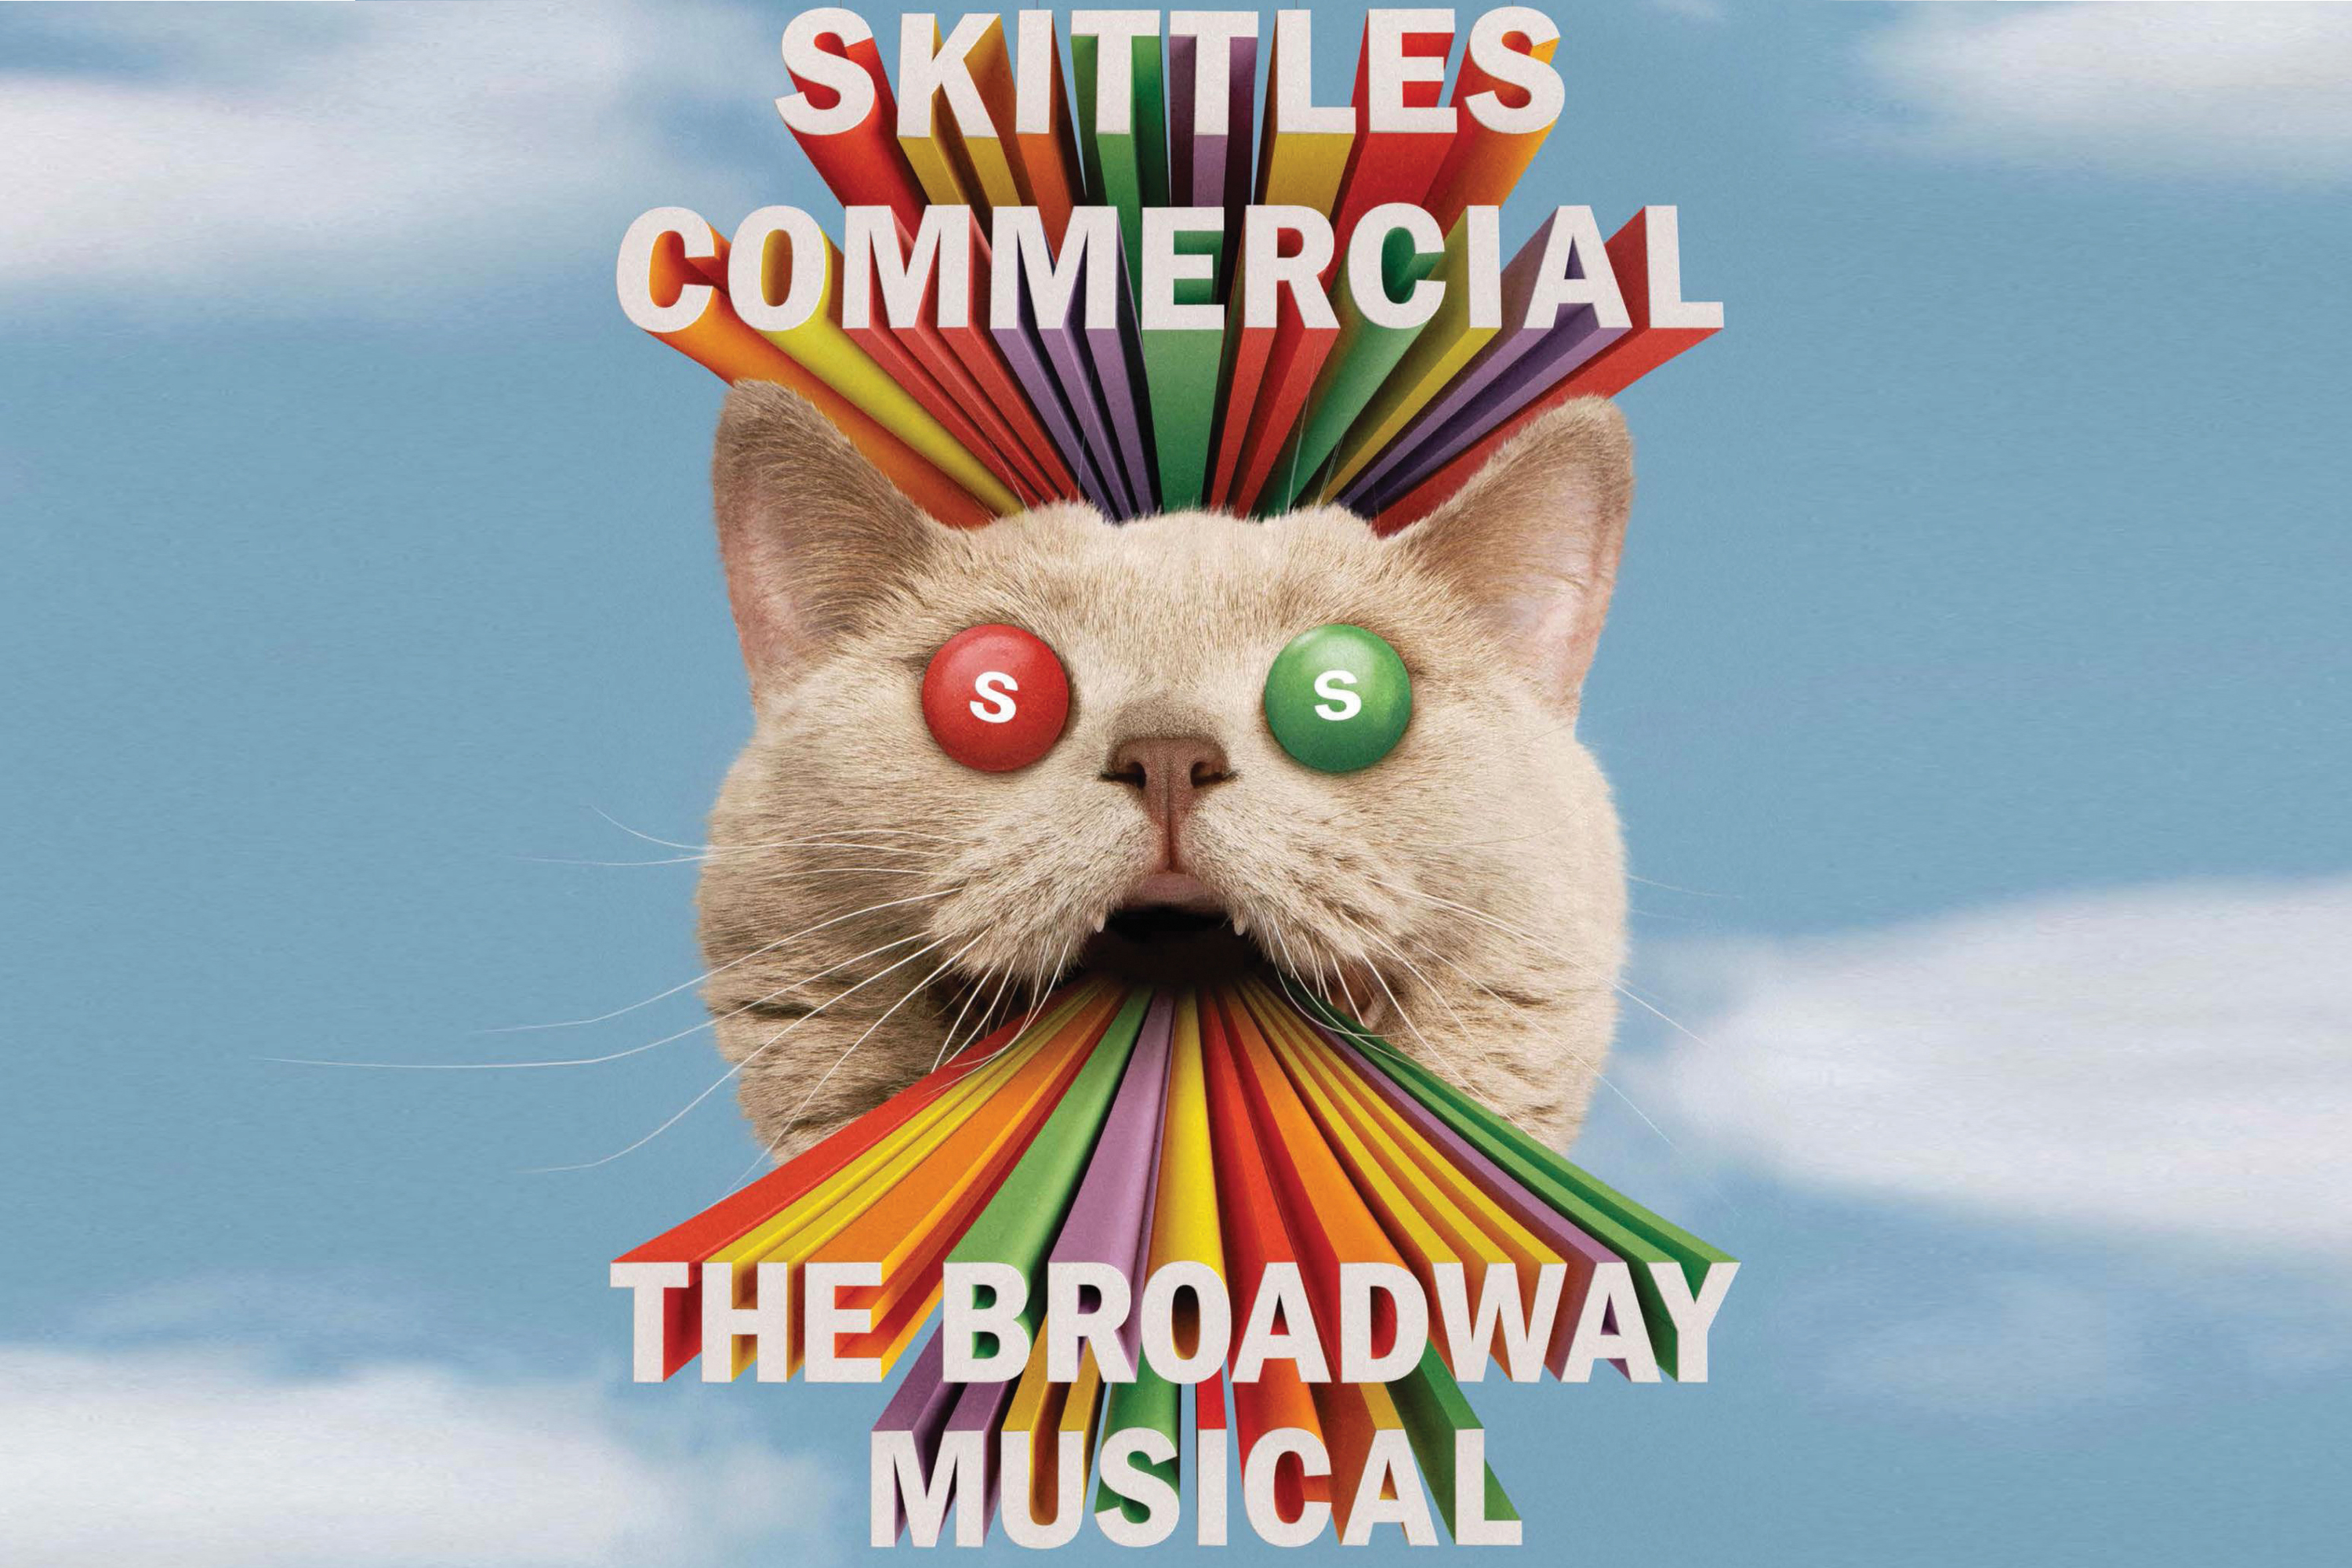 Was Skittles' Broadway musical worth it?